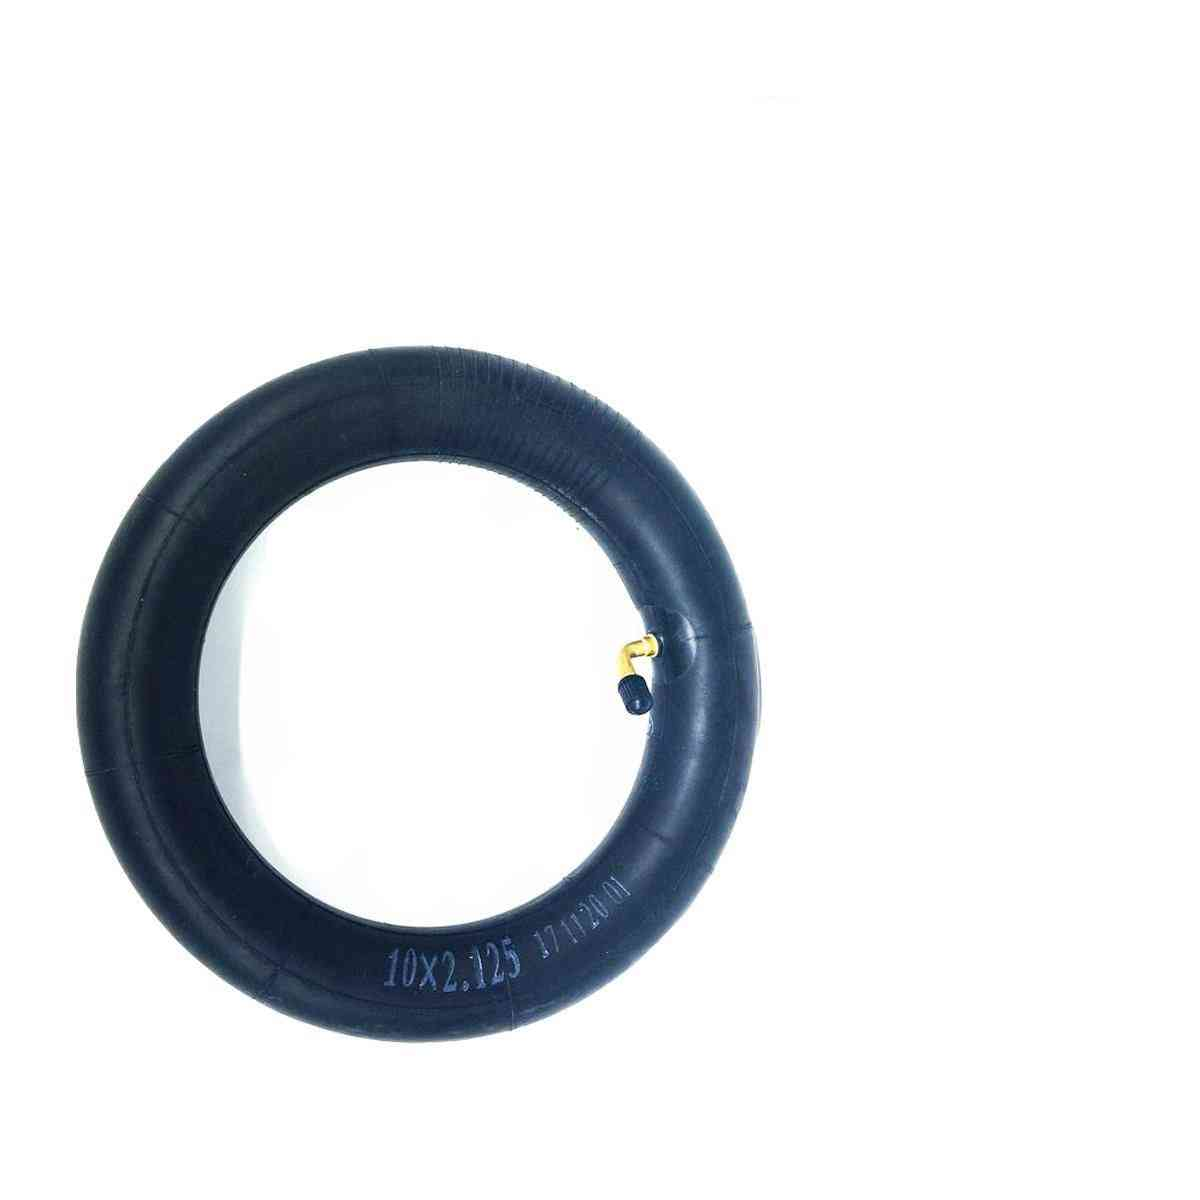 Thickened Rubber, Pneumatic Inner Tube For E-scooter